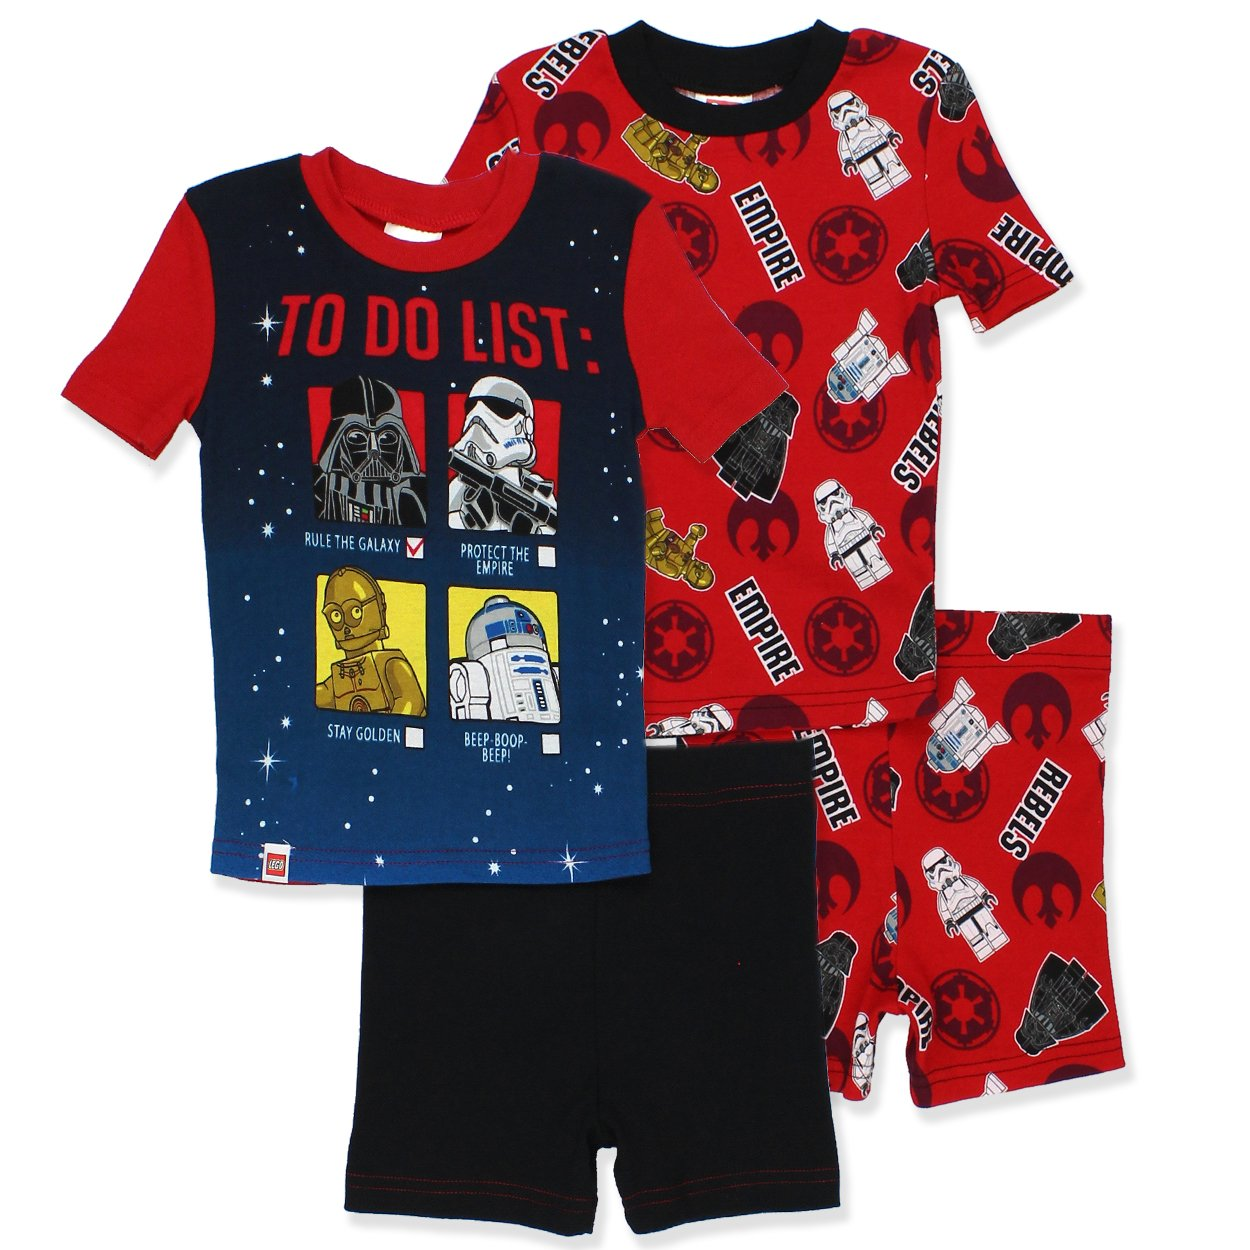 26c626a848 100% Cotton Lego Star Wars boys 2fer 4 piece pajamas sleep set. Ribbed-knit  contrast color collar; Double stitched hems; Elastic waist